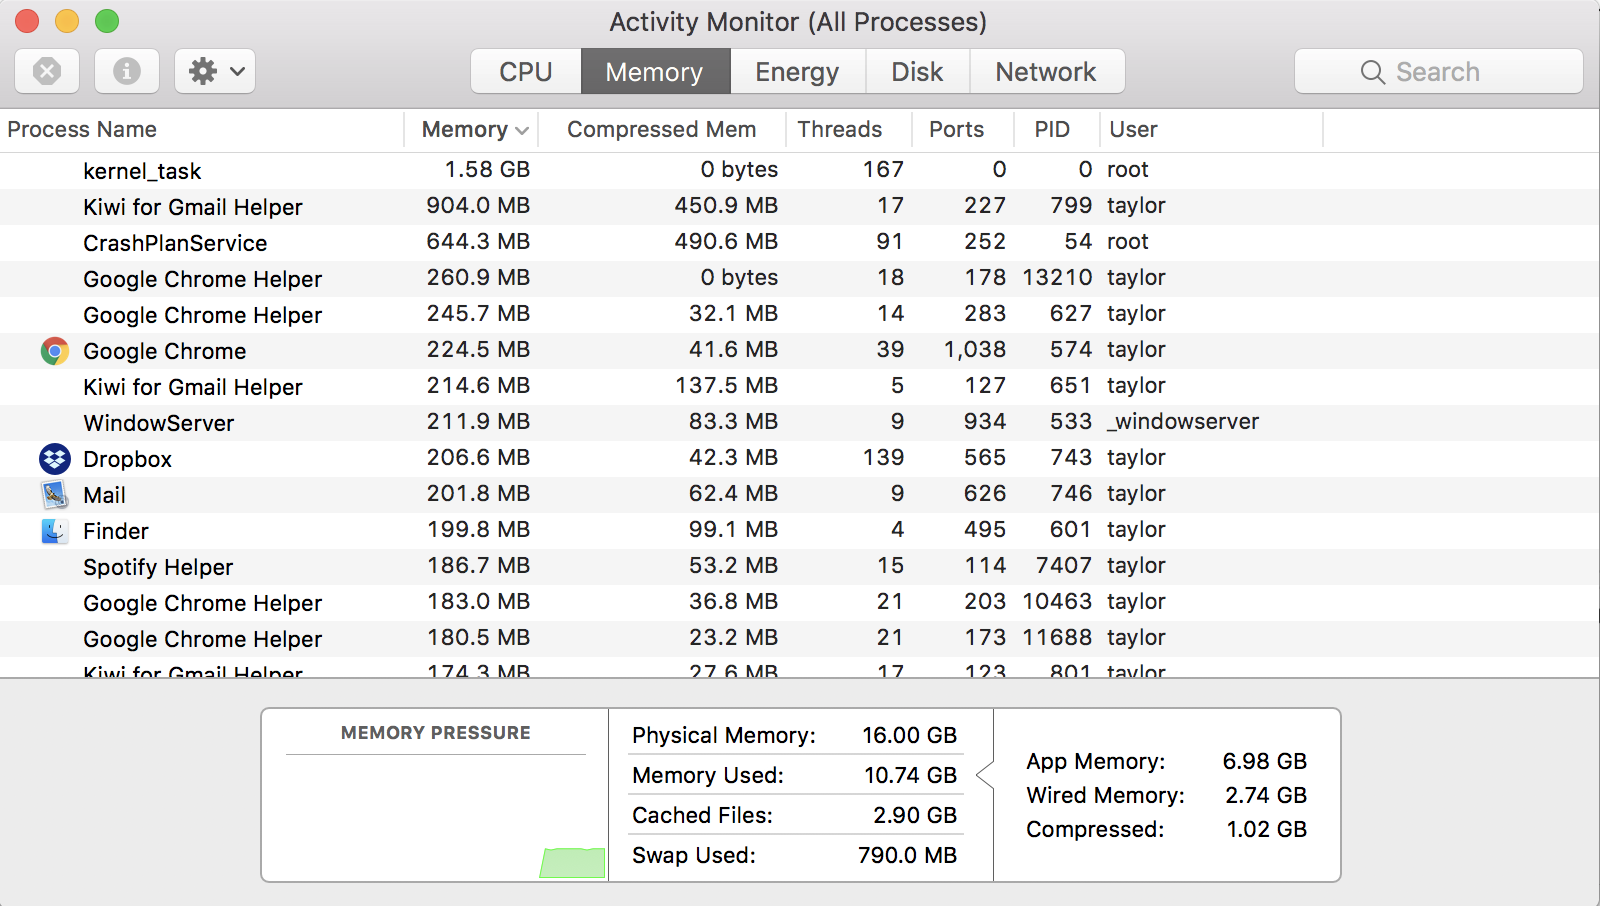 mac activity monitor ram memory usage